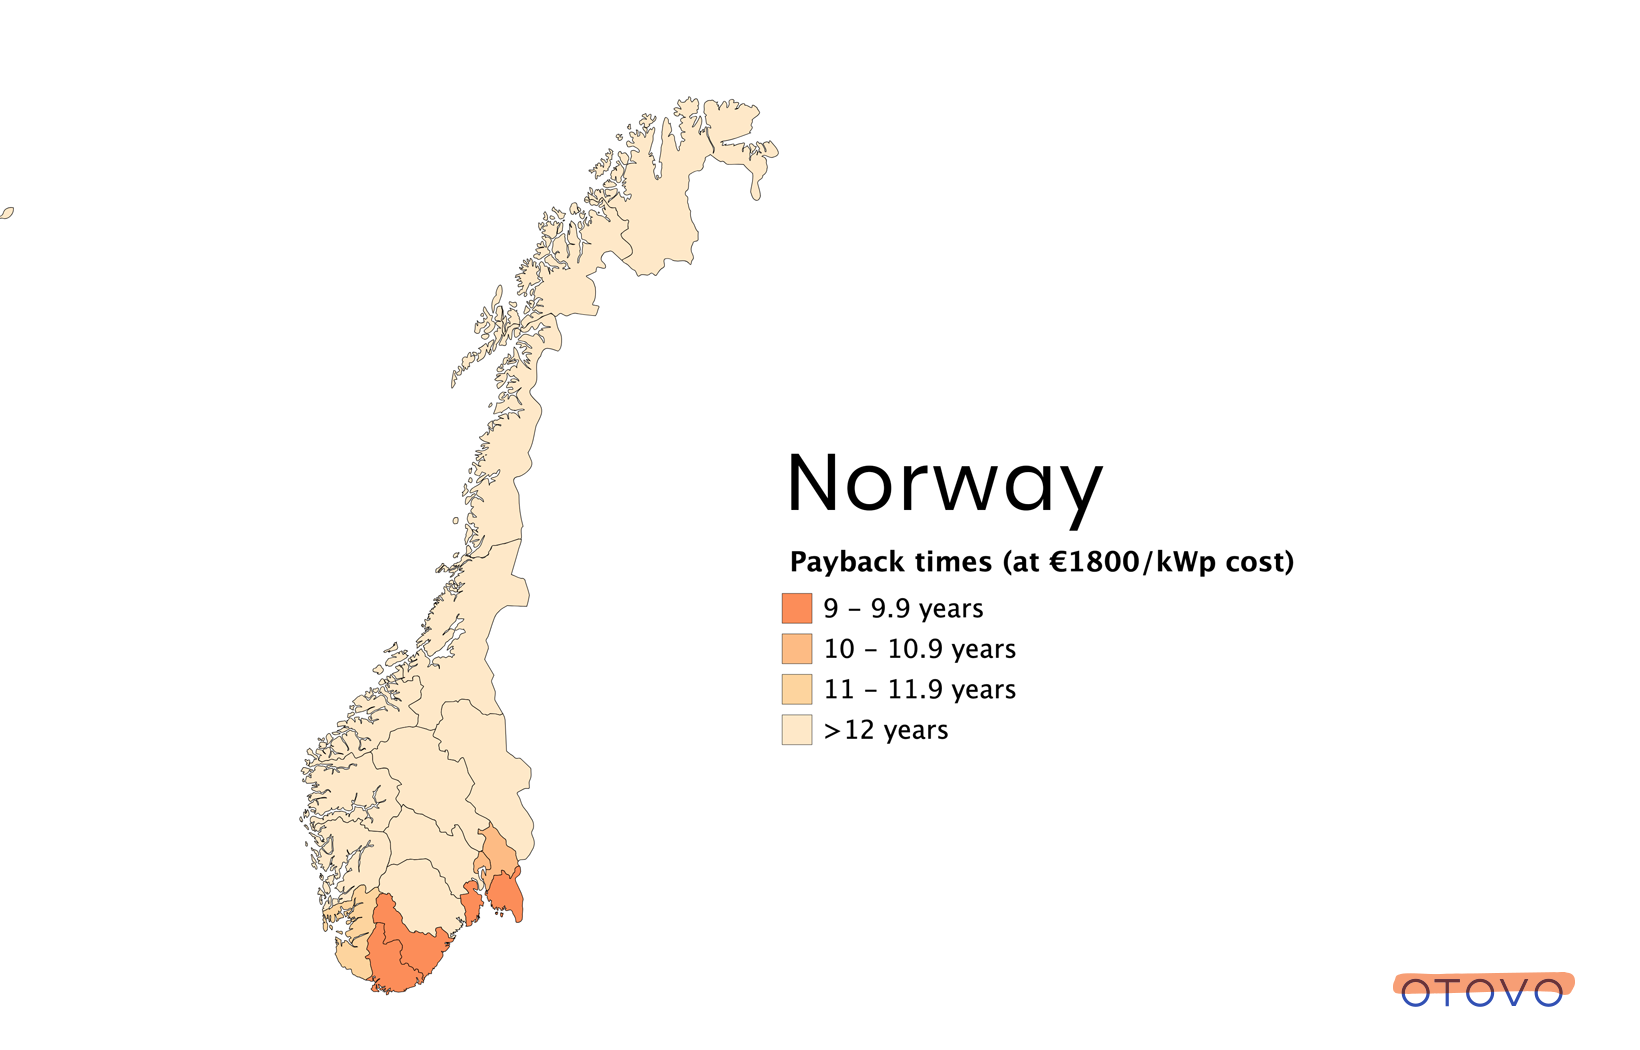 Payback time for solar panels in Norway. One year ago they payback times of over12 years because of solar conditions.